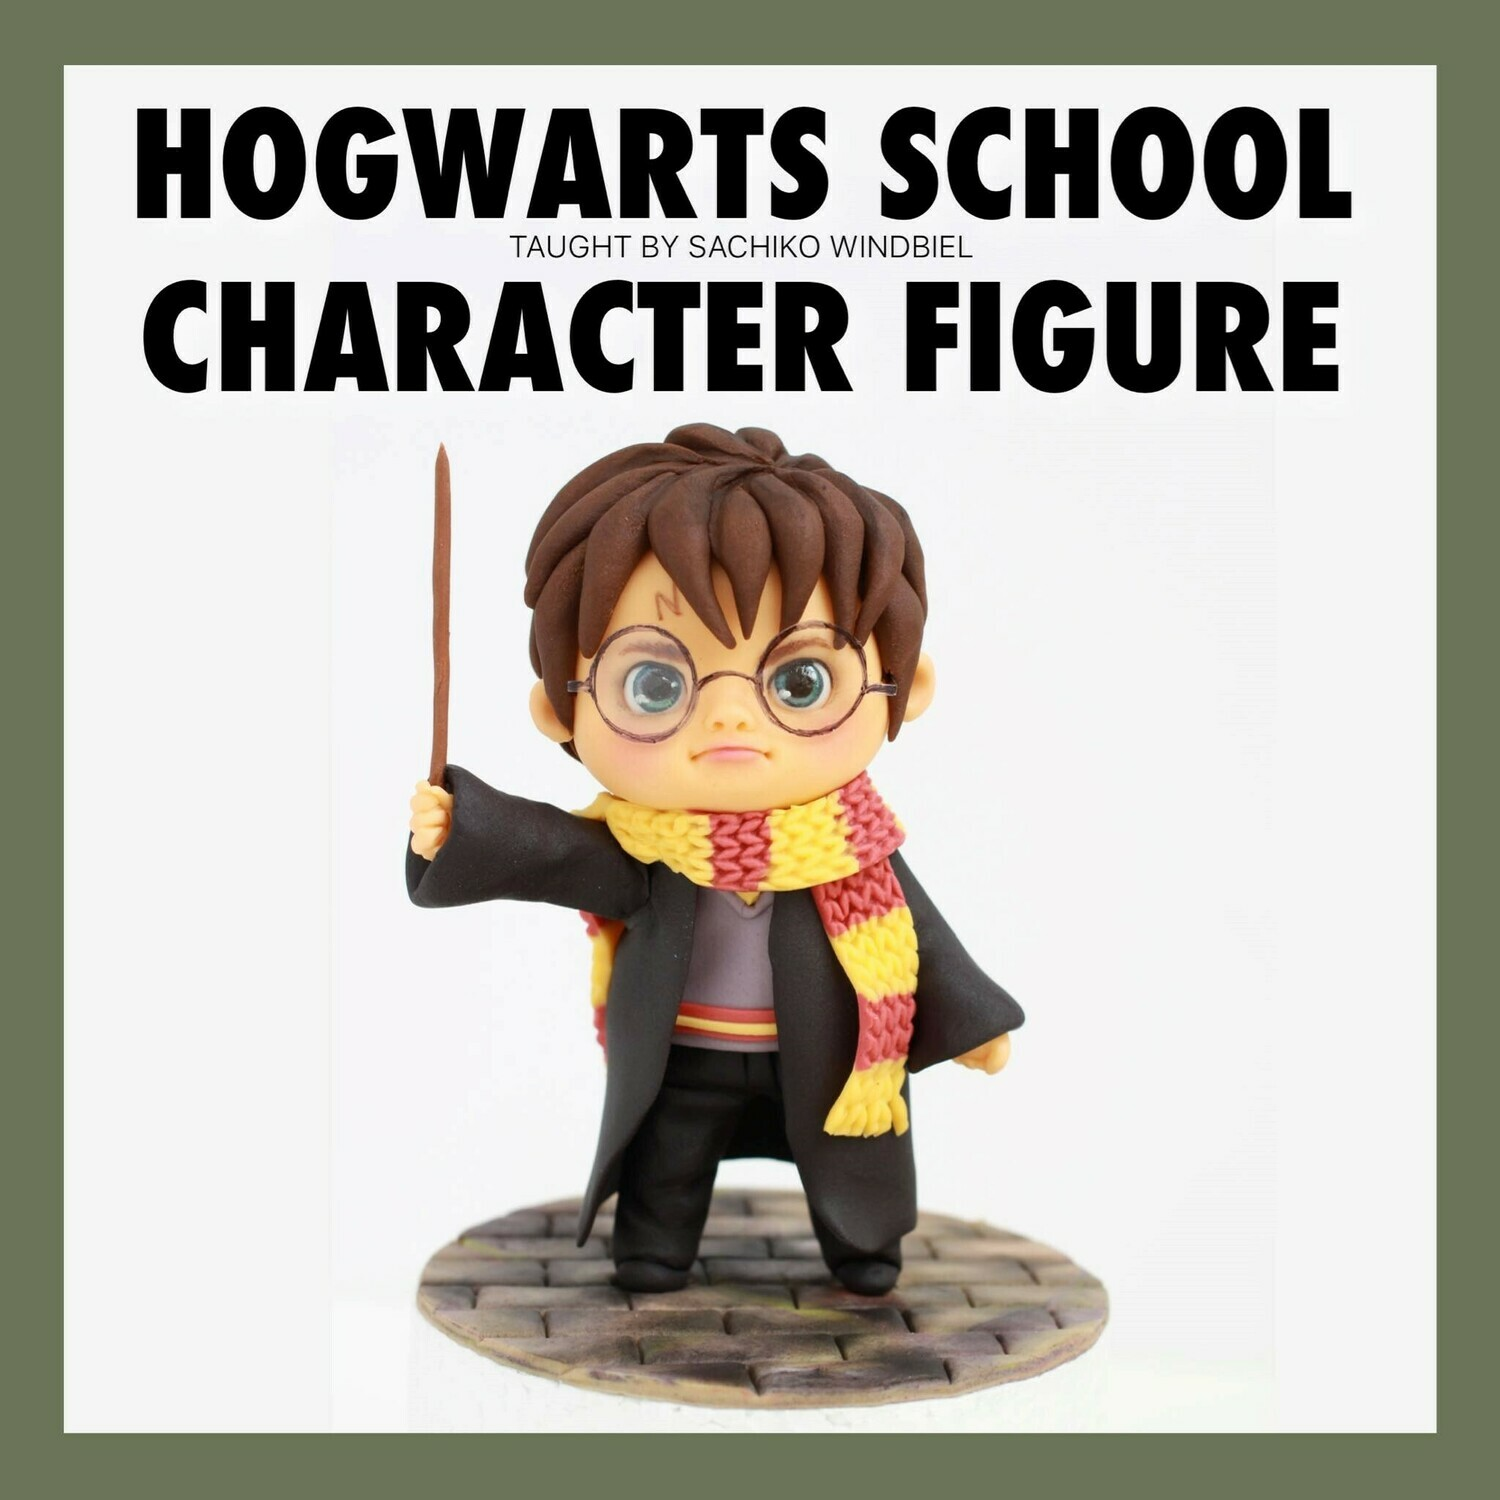 MODELING CLASS: Harry Potter Figure Class with Sachiko Windbeil, Saturday, Oct 26th from 2:30 pm to 6:30 pm